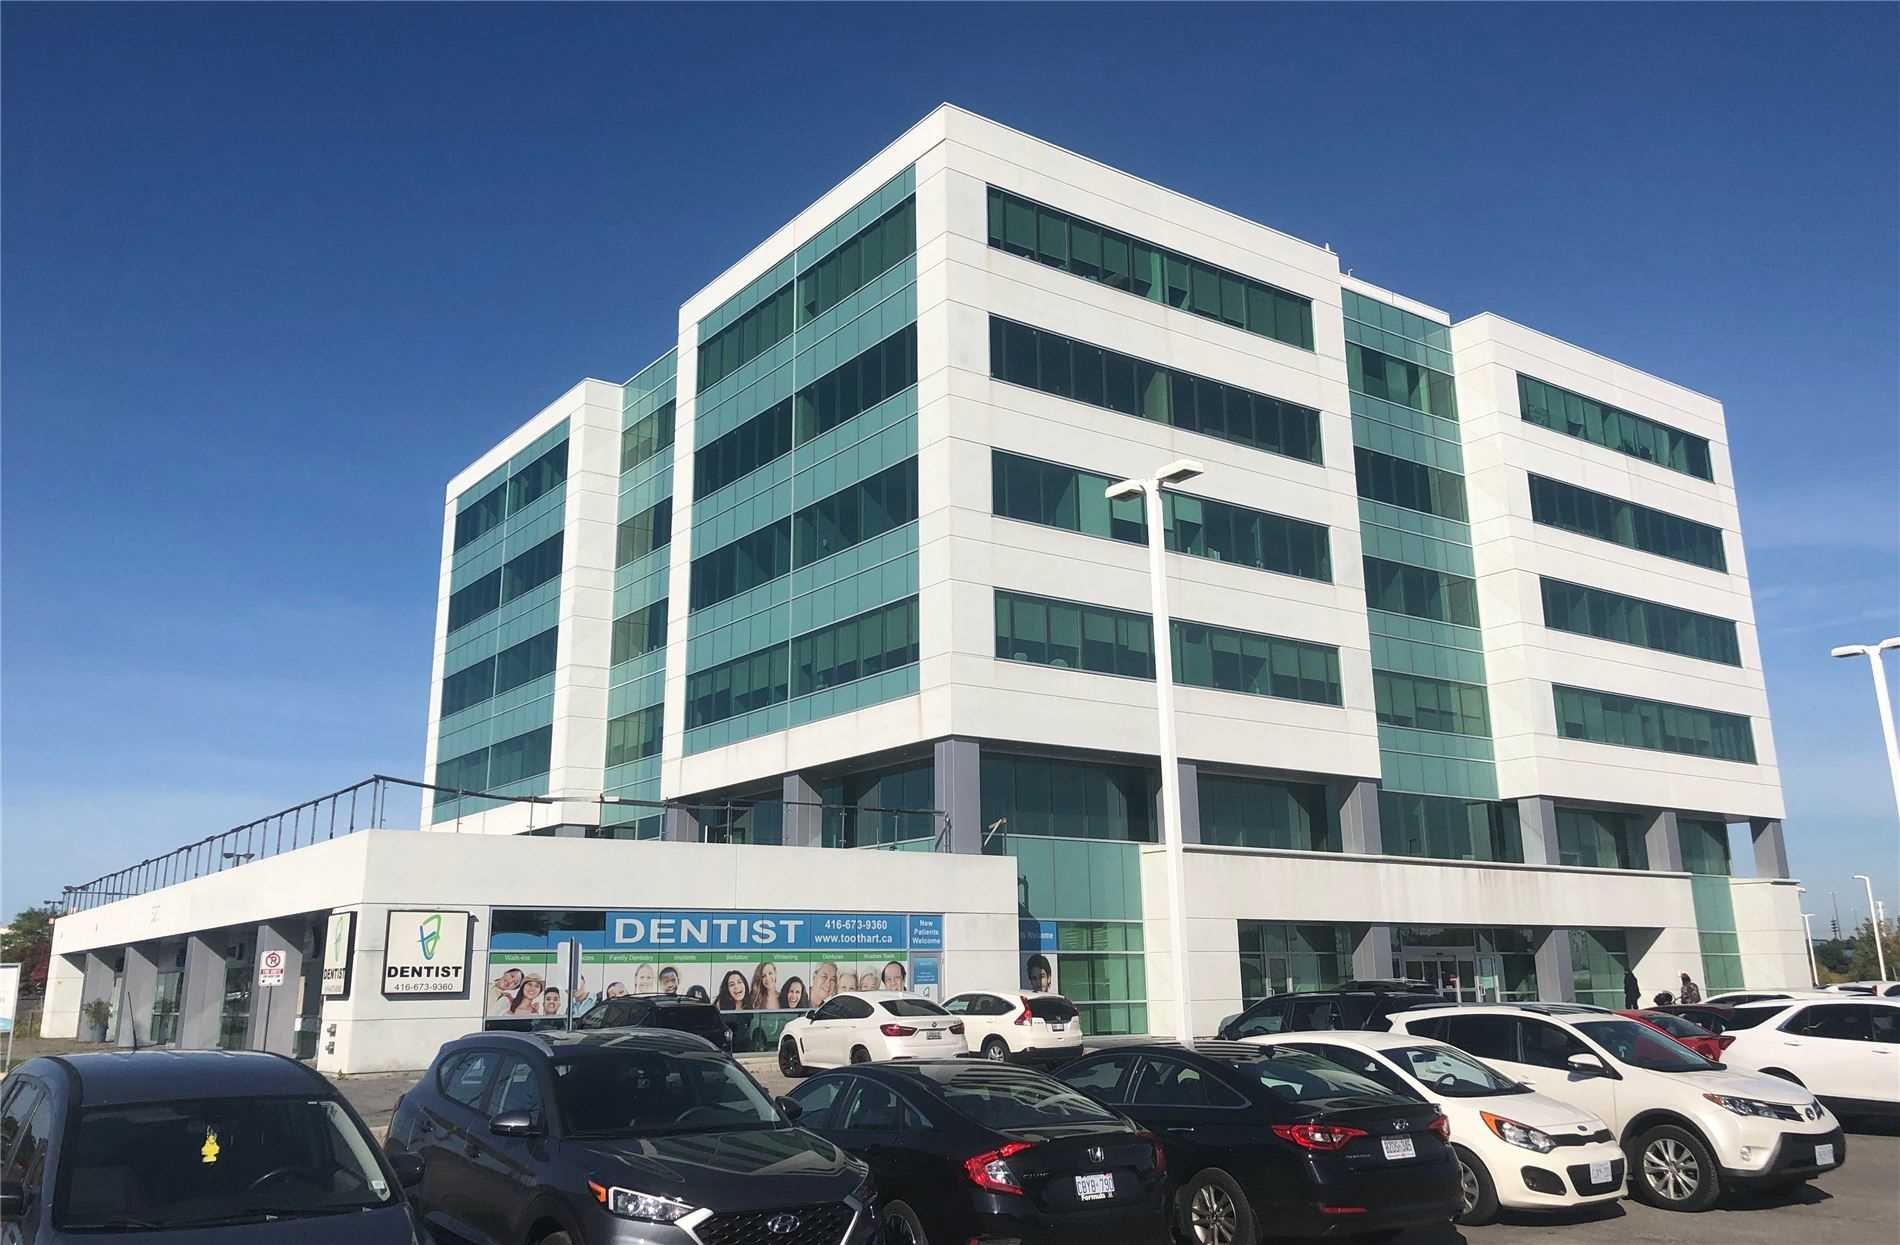 520 Ellesmere Rd 212, Wexford-Maryvale, Toronto, Ontario M1R4E6, ,Office,For Lease,Ellesmere,E5060076